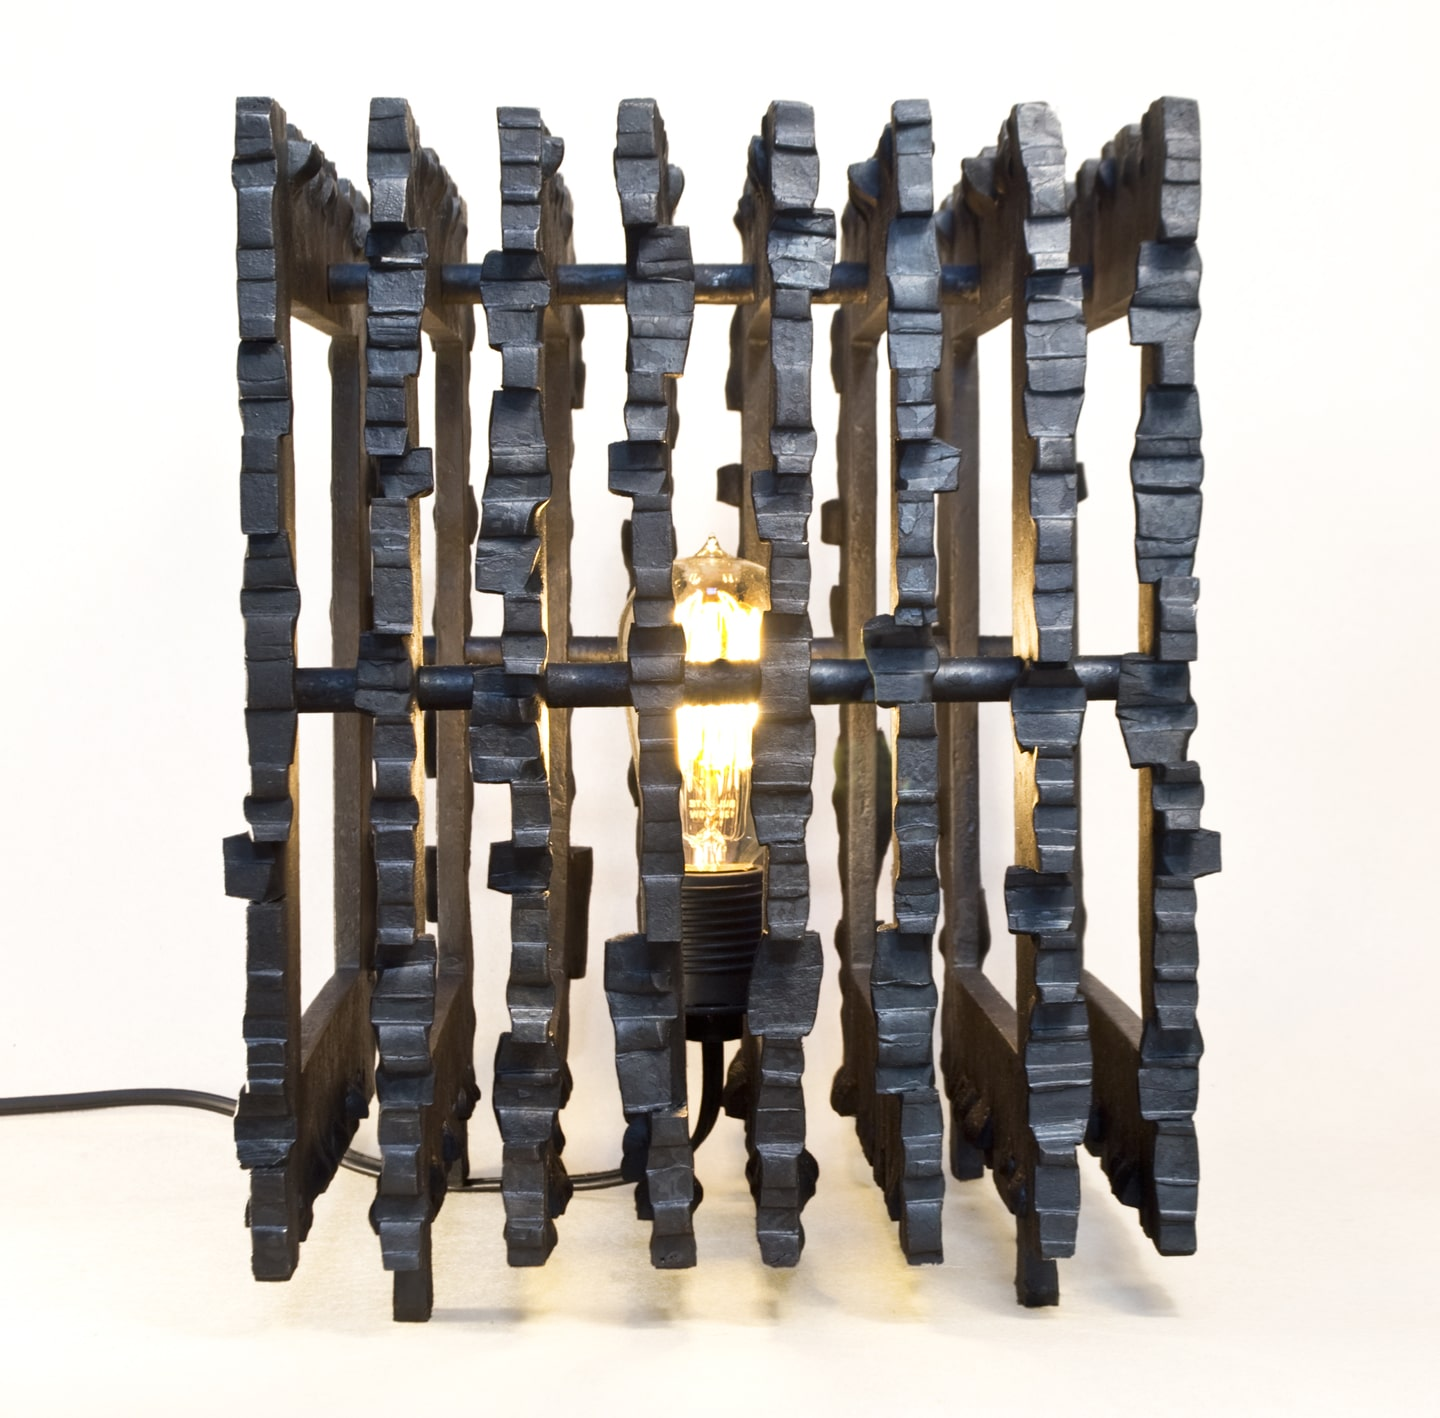 Blacksmith, Forged, Custom, Design, Daniel Hopper Design, Iron, Steel, Lighting